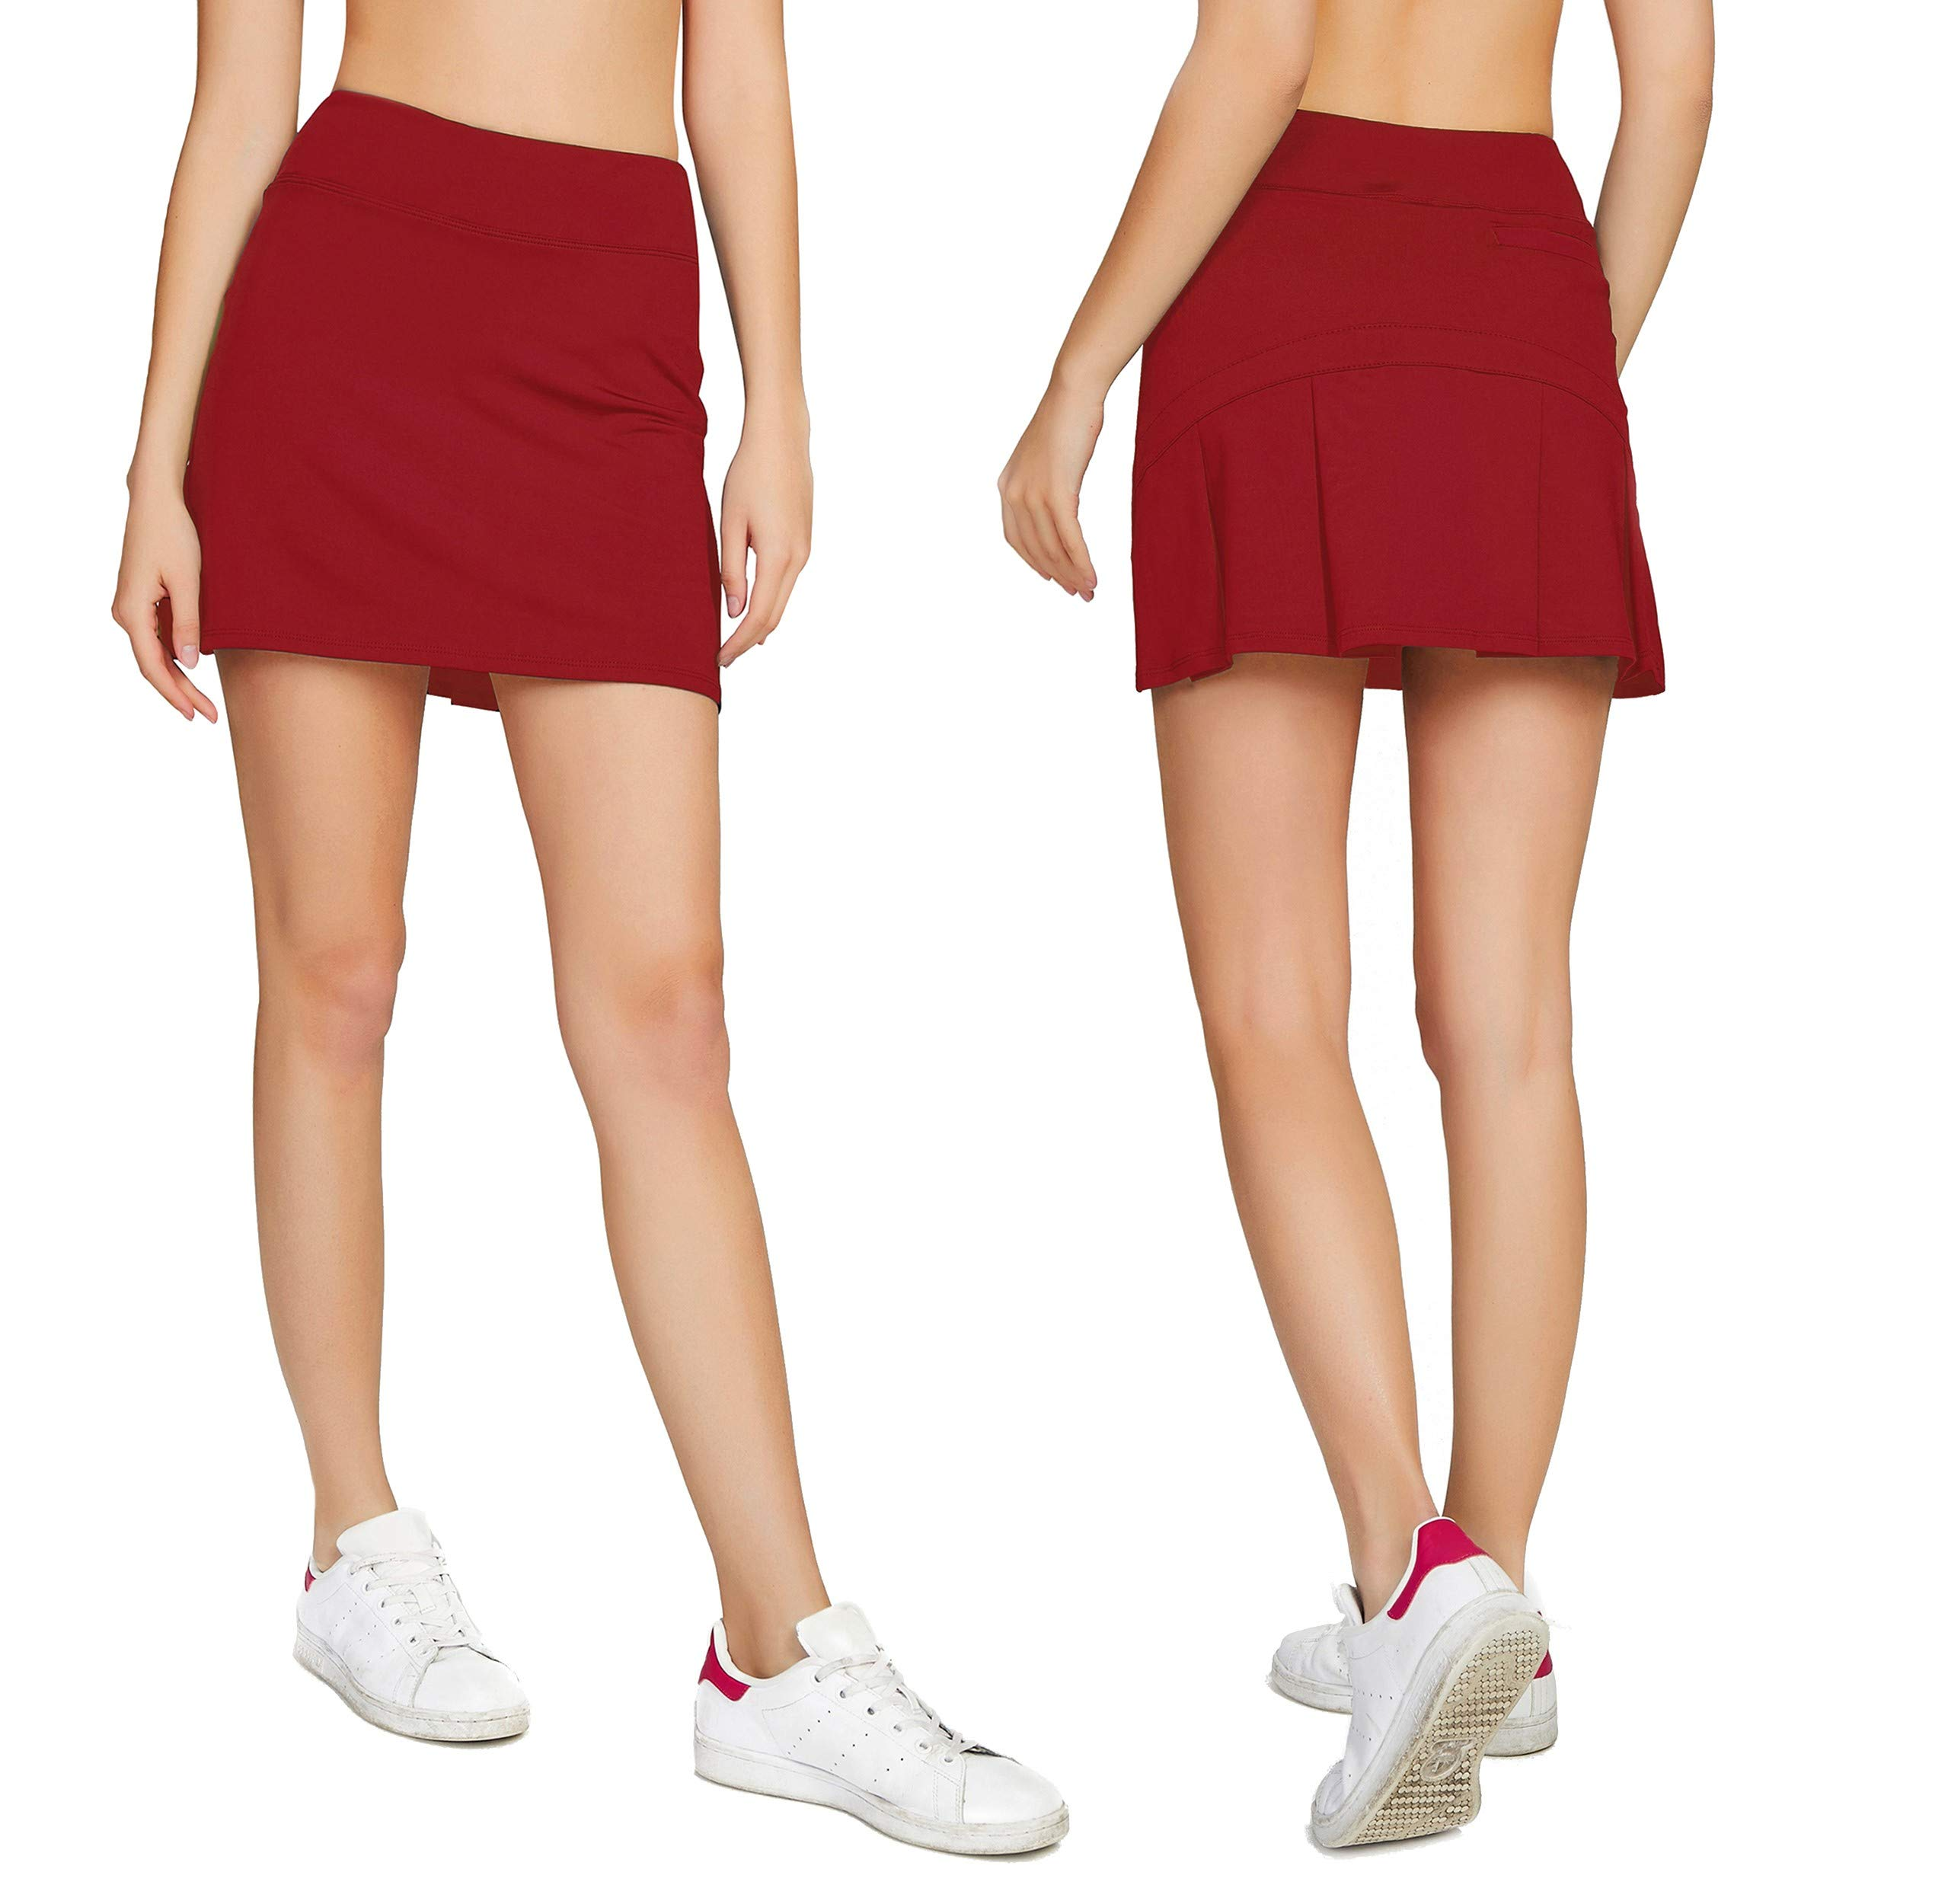 Cityoung Women's Casual Pleated Tennis Golf Skirt with Underneath Shorts Running Skorts rd xs